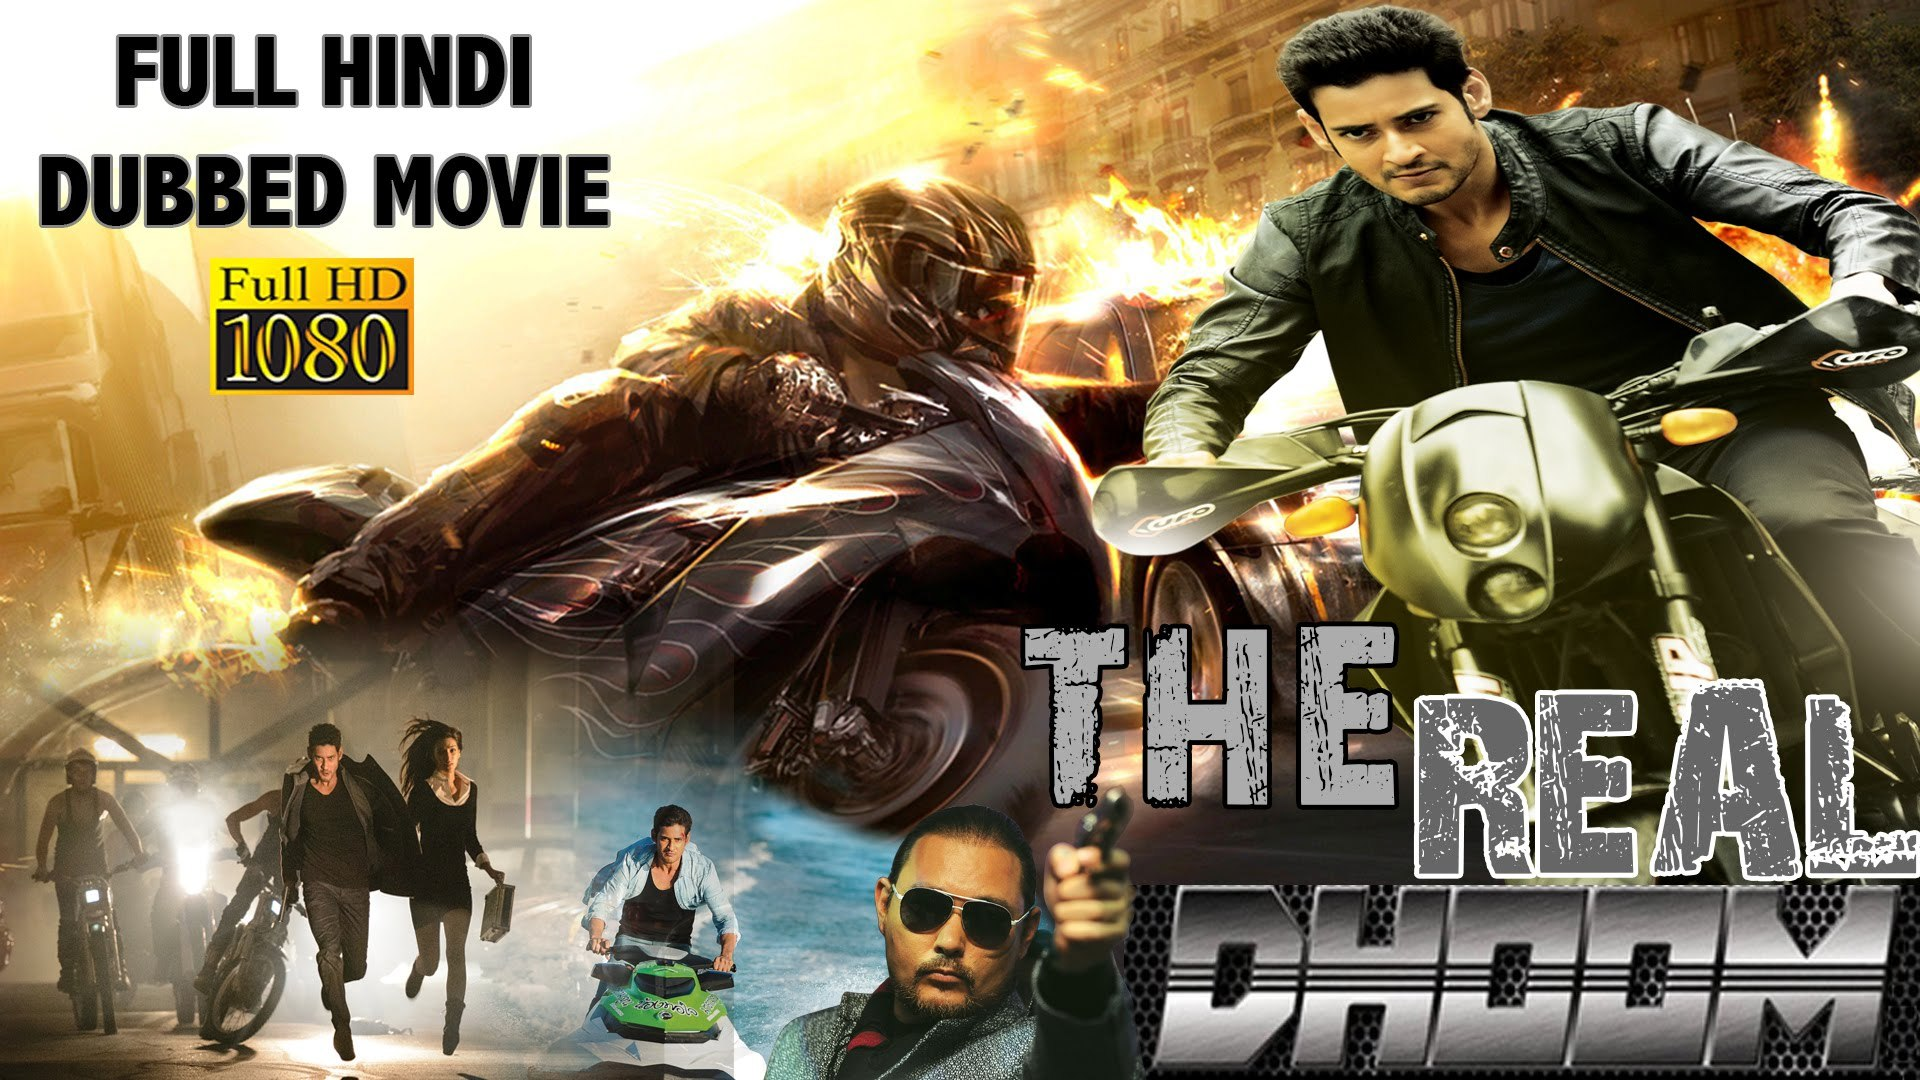 The Real Dhoom (2016) Full Hindi Dubbed Movie Brahmotsavam Mahesh Babu,  Kriti Sanon 3